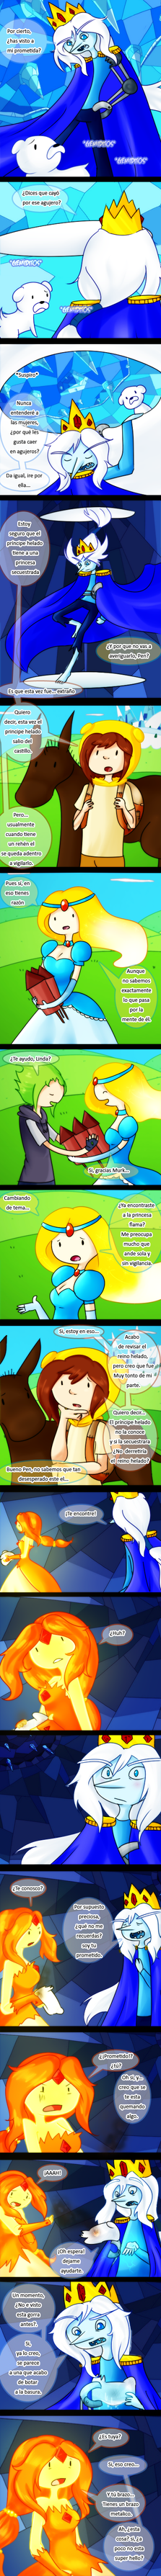 The Ice Prince - Parte 7 by Rumay-Chian